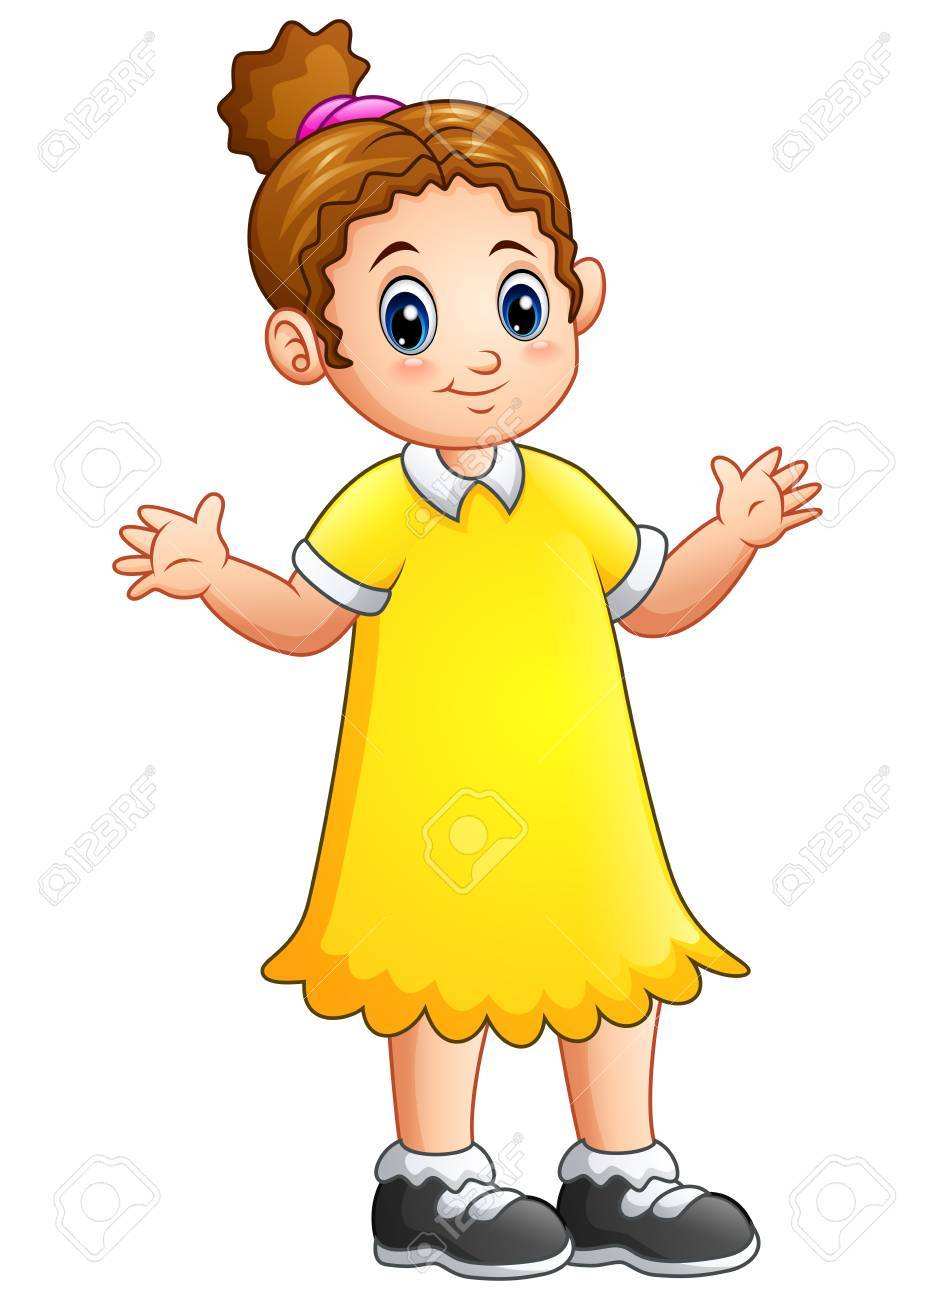 Clipart fille picture library library Clipart fille 3 » Clipart Portal picture library library